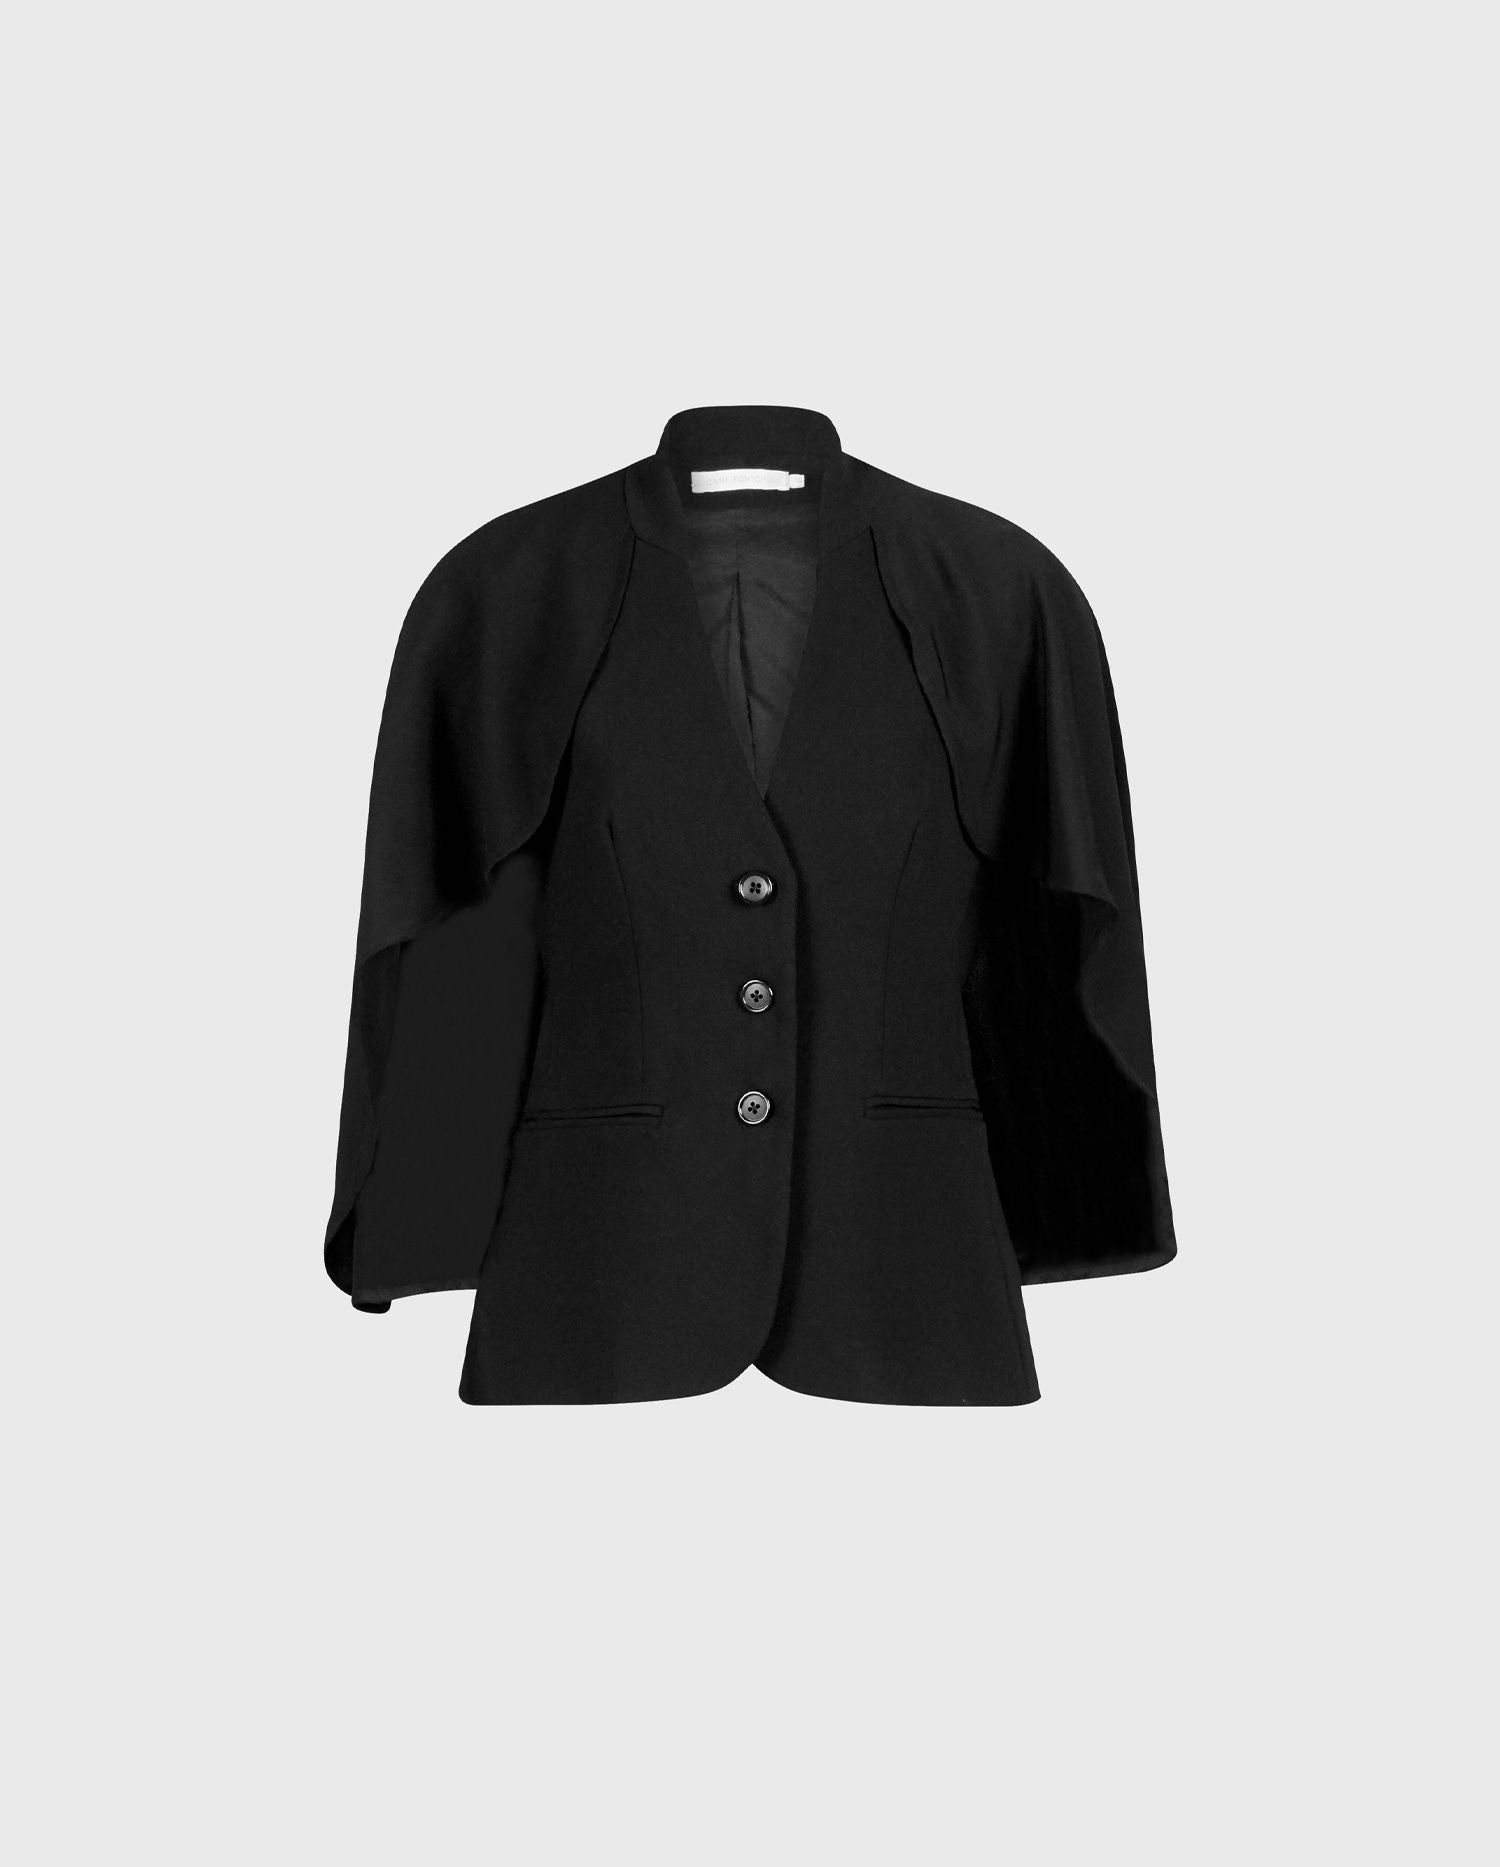 Take your look to new heights with the statement black MYLIANE crepe black jacket.